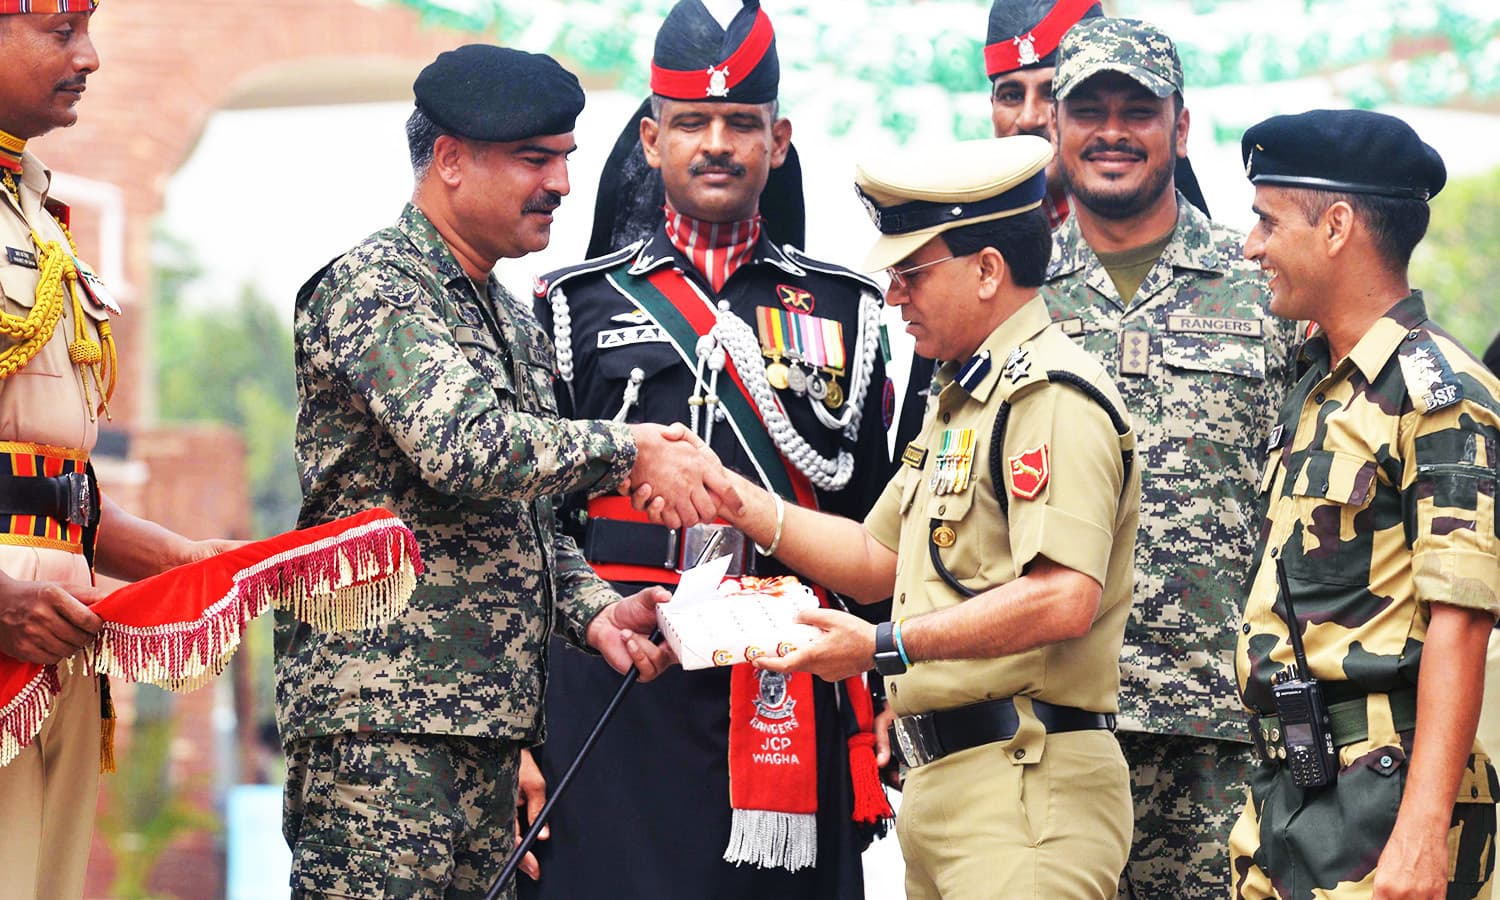 Indian BSF Commandant Sudeep presents sweets as he shakes hand with the Pakistani Wing Commander Bilal during a ceremony at the India-Pakistan Wagah border post.—AFP